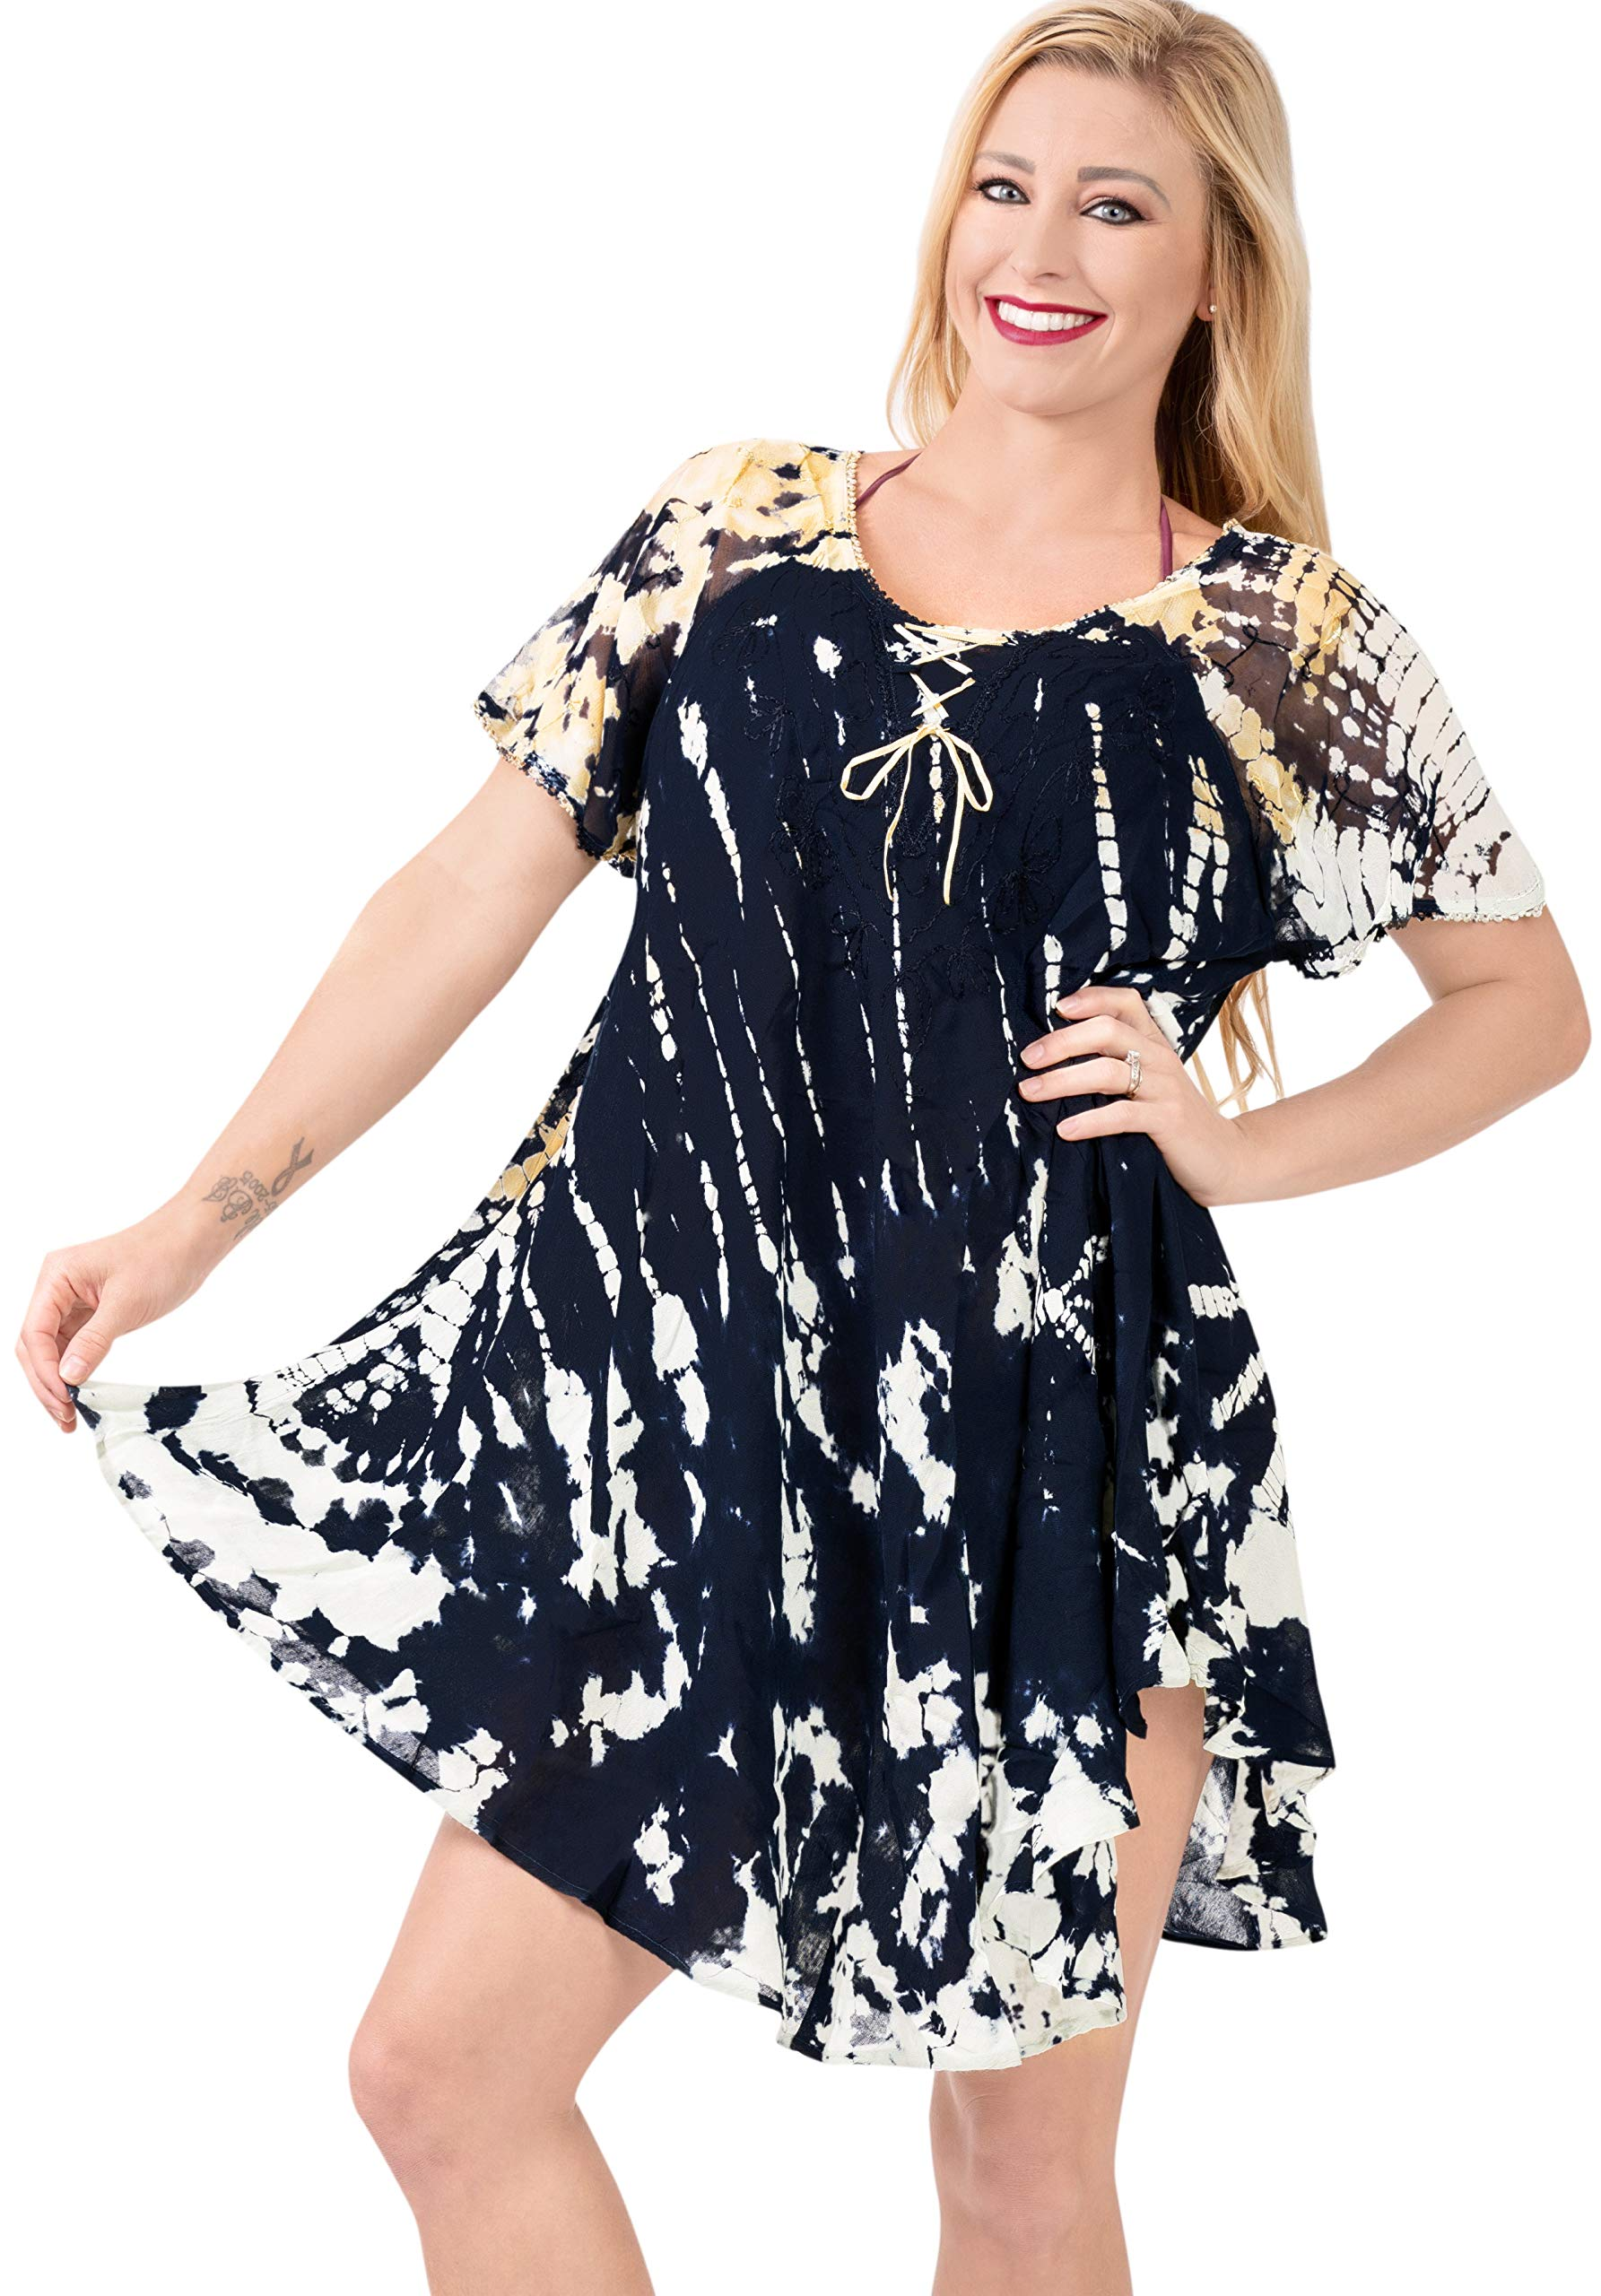 LA LEELA Women Summer Casual Swing T-Shirt Dresses Beach Cover up Hand Tie Dye A